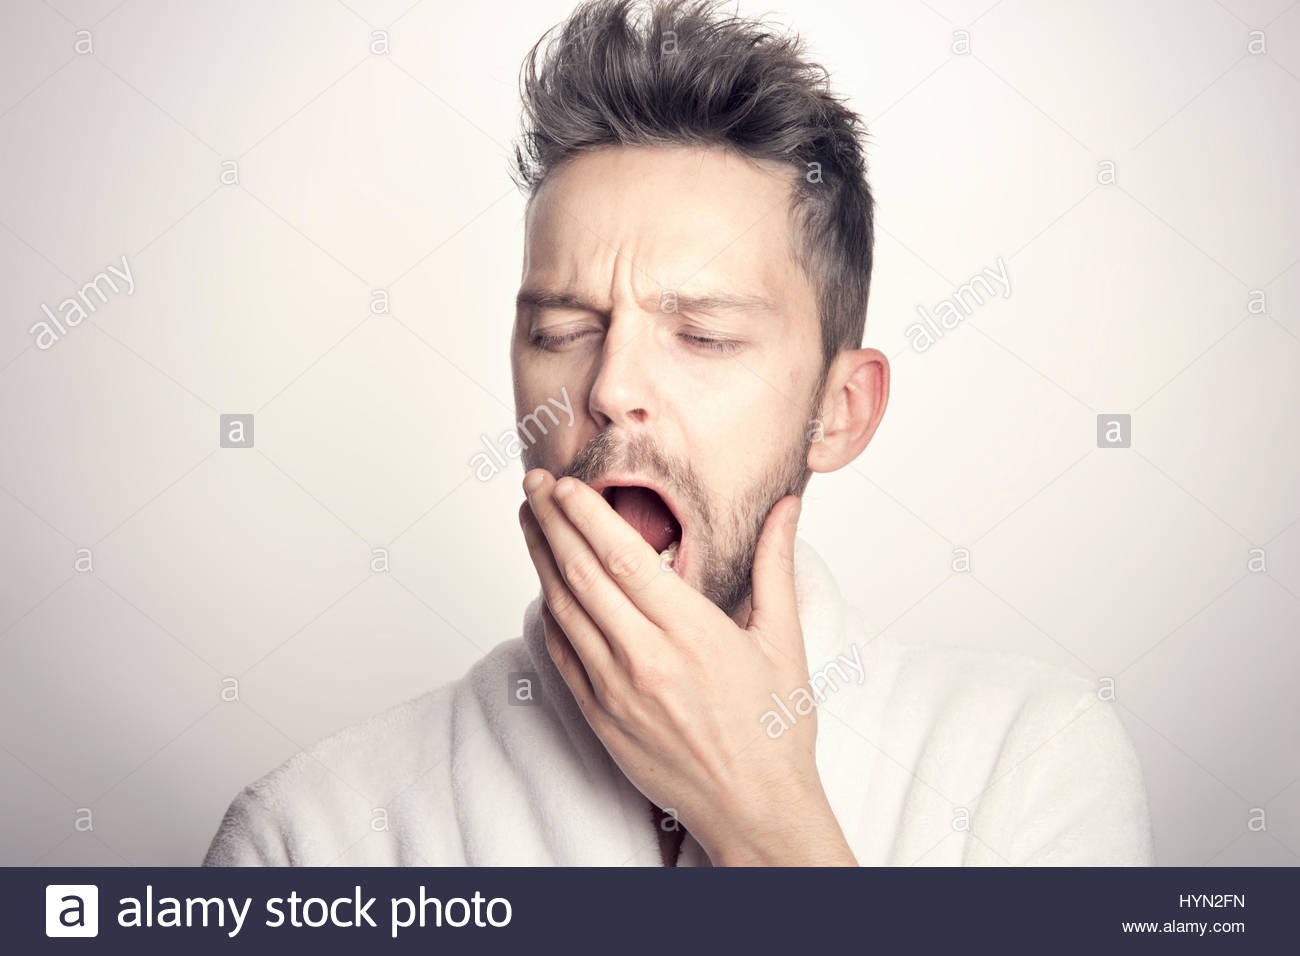 Man yawning with hand before mouth - Stock Image